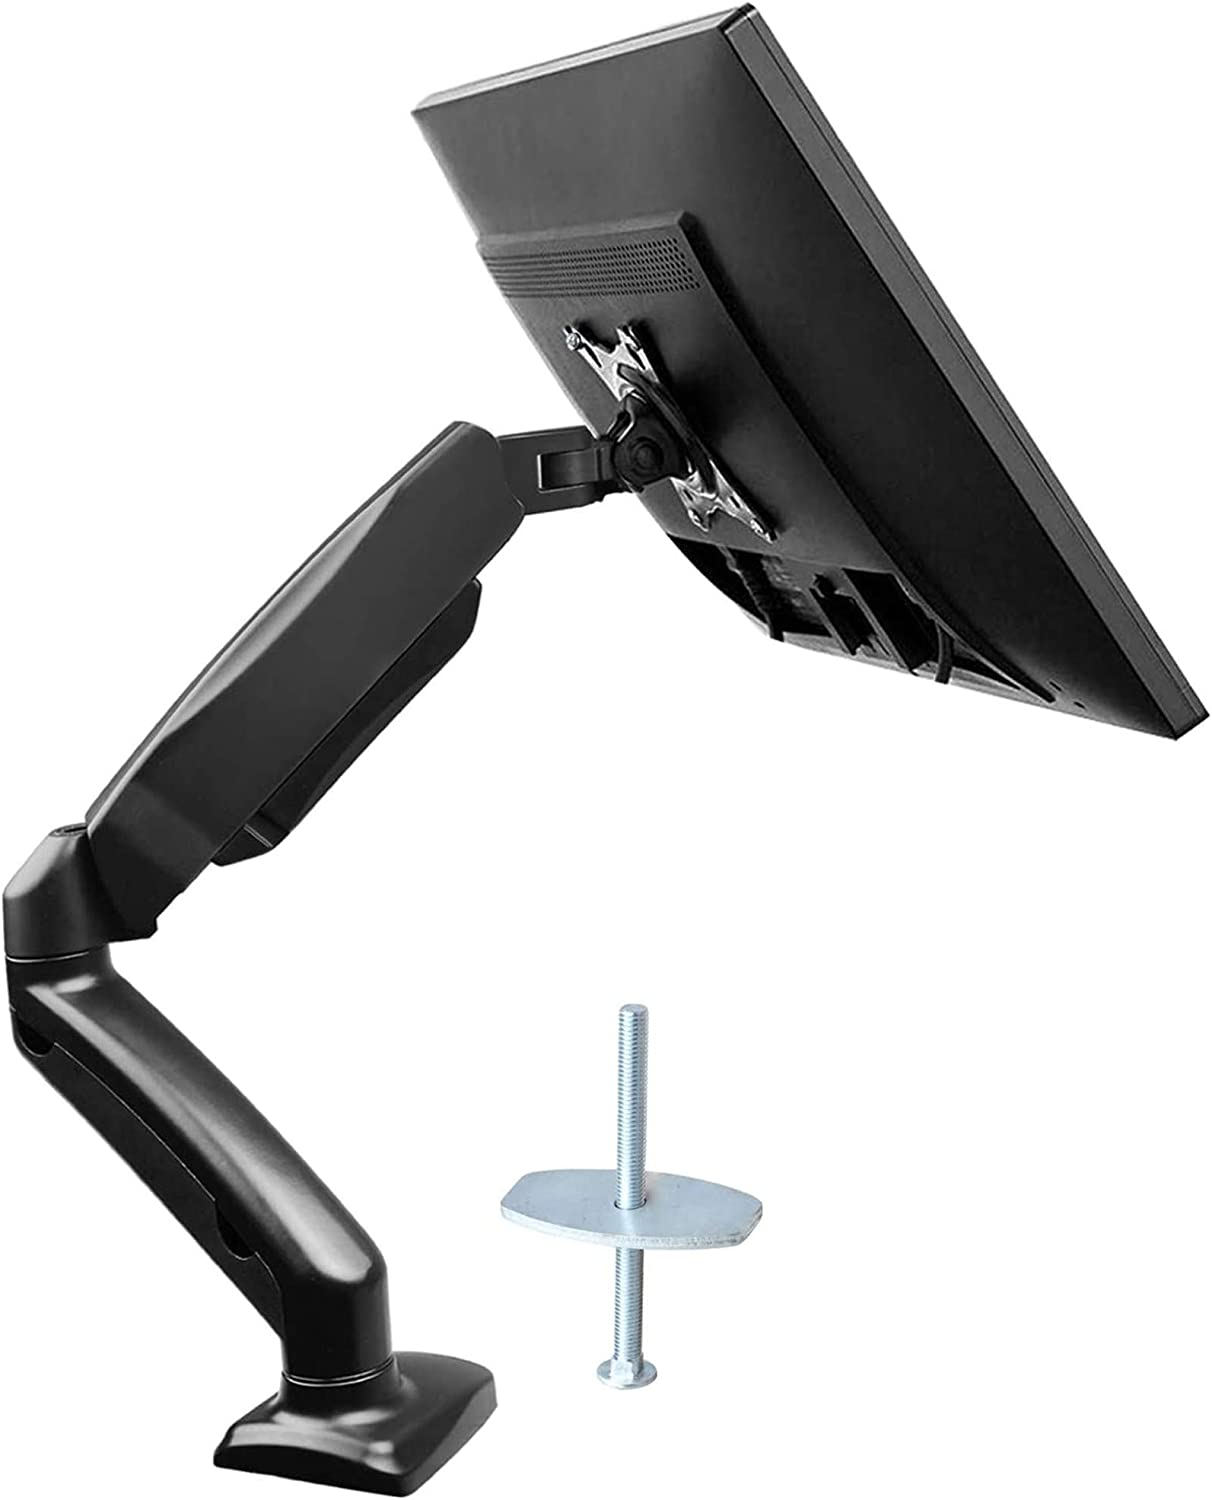 Grommet Mounting Base Single Monitor Stand Gas Spring Single Arm Monitor Stand Desk VESA Mount for 13 to 32 Inch Screen with Clamp